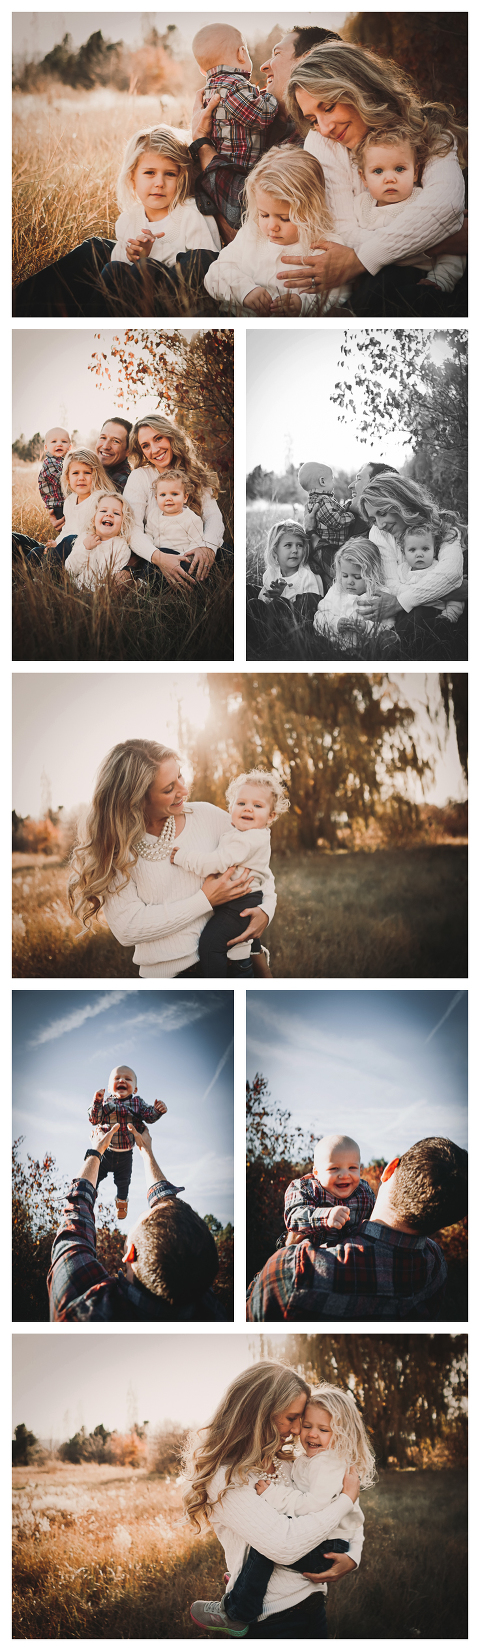 Taylor Family, Lifestyle session captured by Hailey Haberman, Ellensburg, WA